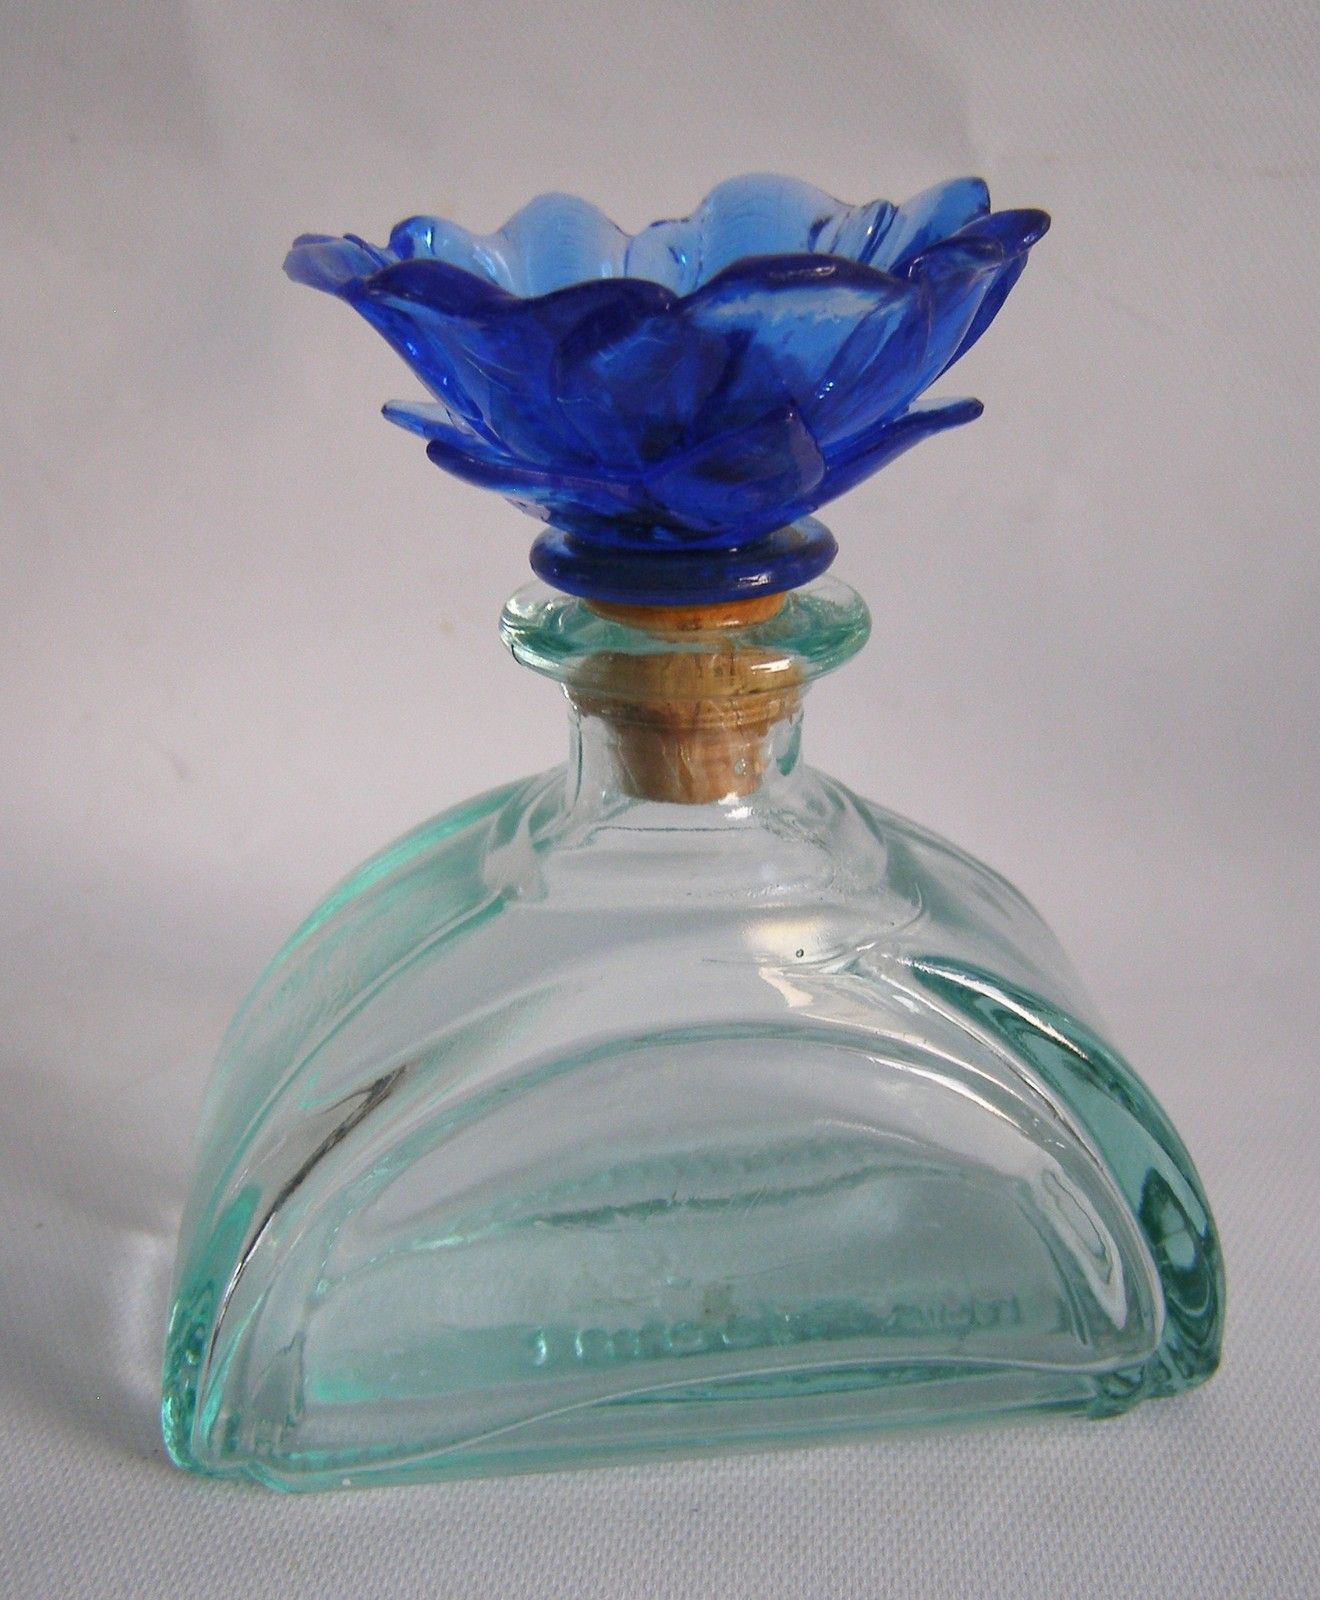 Green glass perfume bottle w blue flower stopper art deco 4 tall green glass perfume bottle w blue flower stopper art deco 4 tall italy 100ml ebay izmirmasajfo